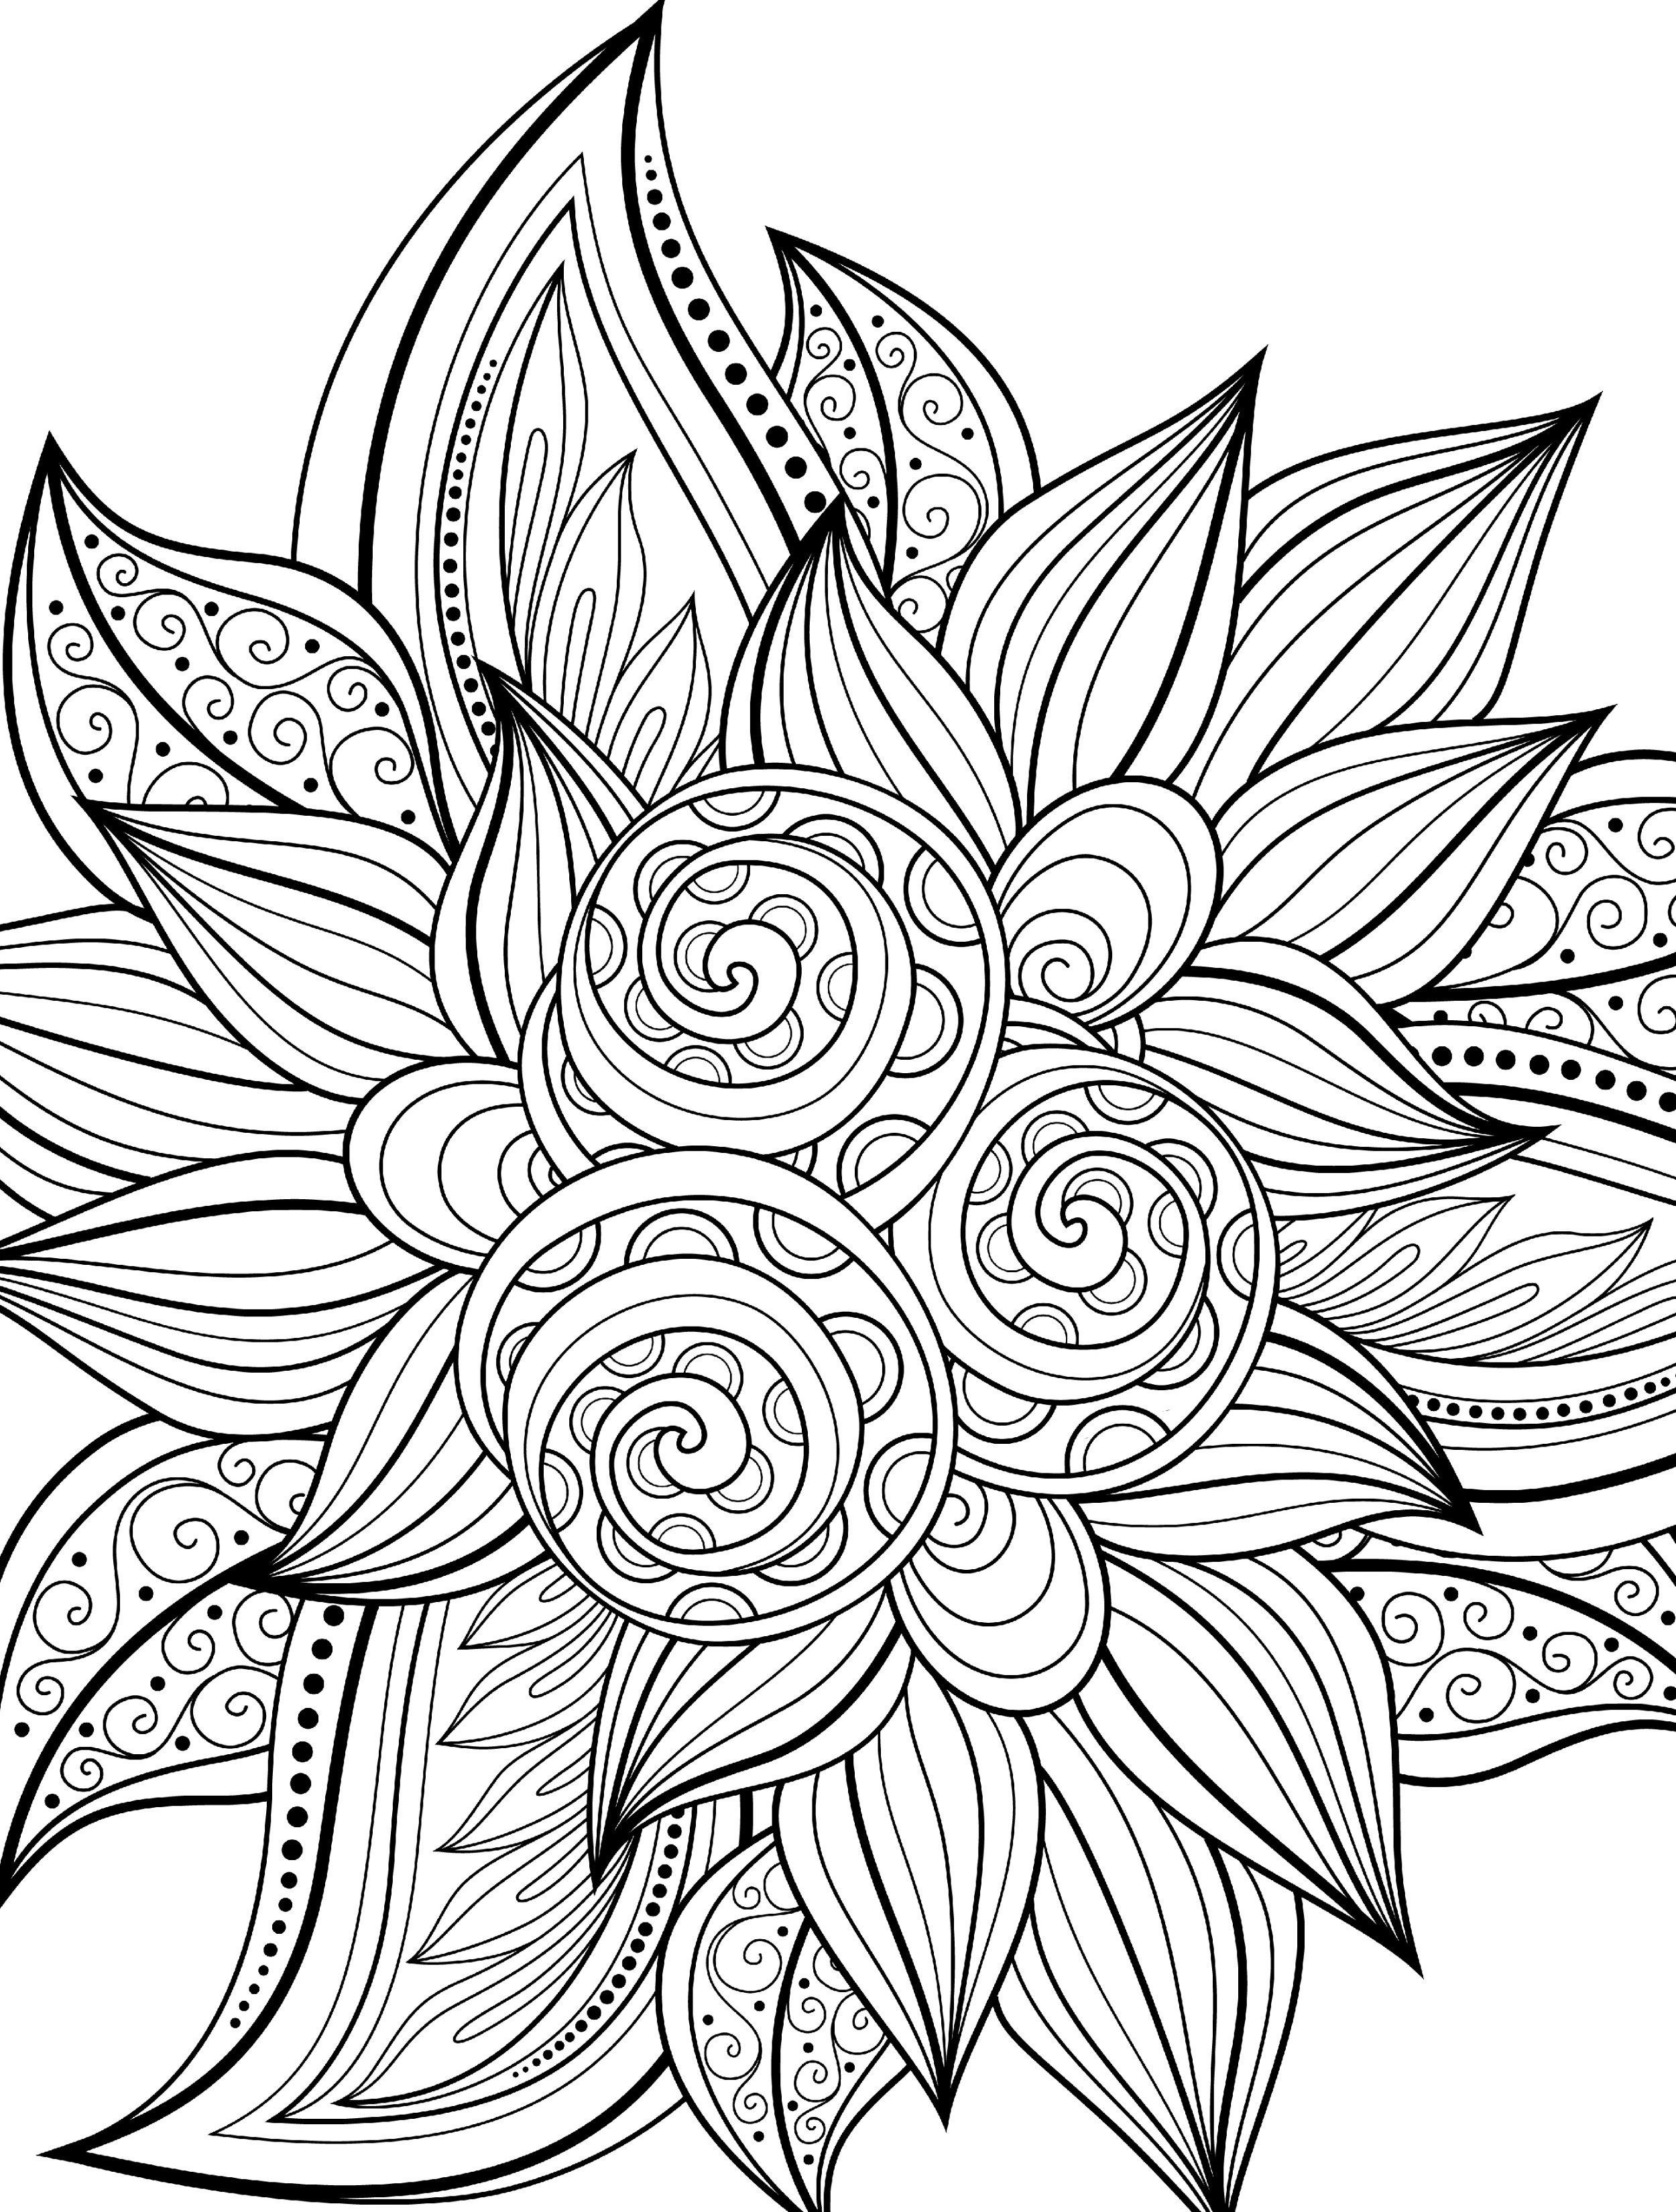 Pages For Adults Pri Free Download Cool Printable Coloring Page Small